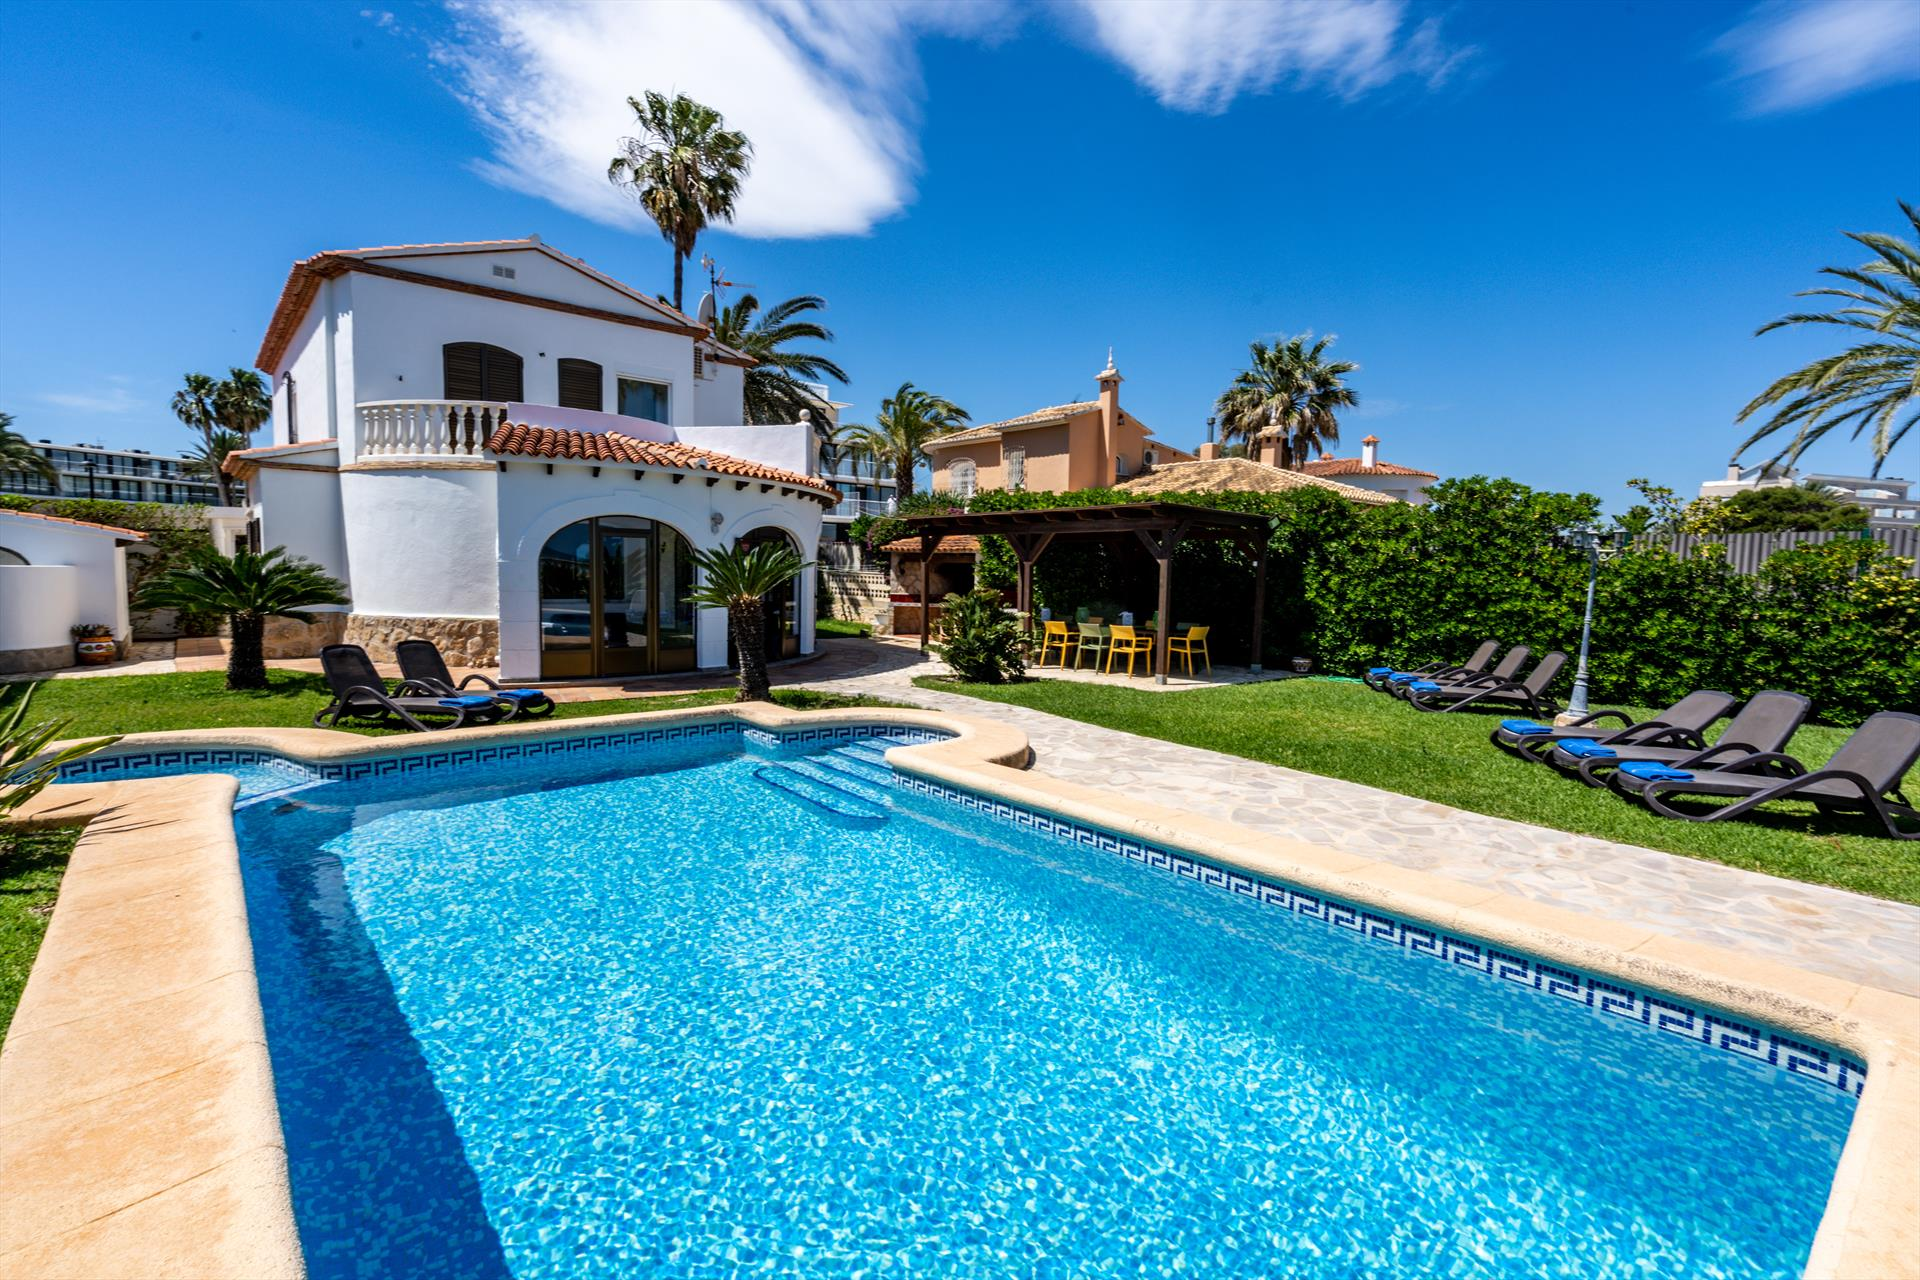 Villa Neptun, Villa  with private pool in Denia, on the Costa Blanca, Spain for 12 persons.....